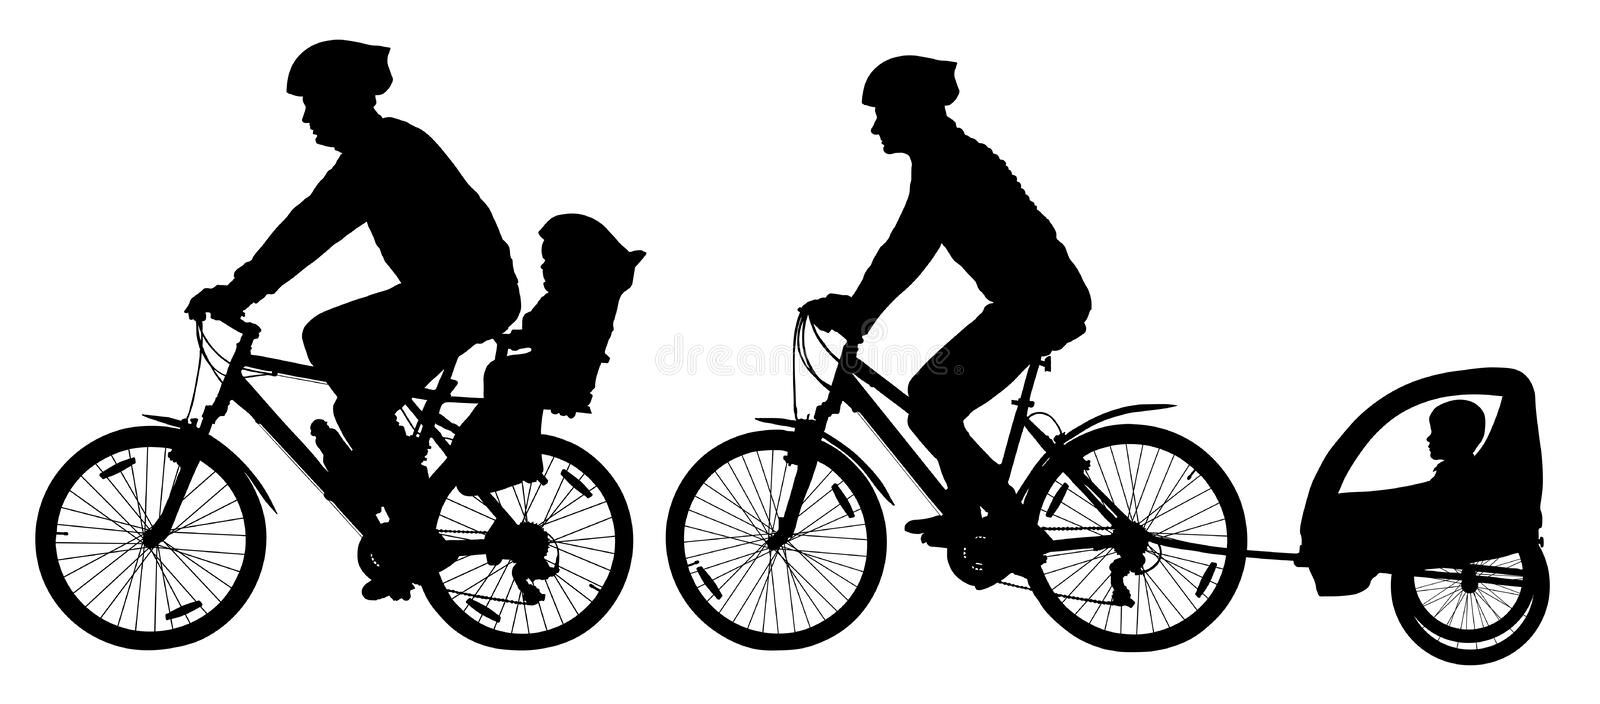 Family with children traveling on bikes. Mountain bike silhouette. Cyclist with a child stroller. stock illustration